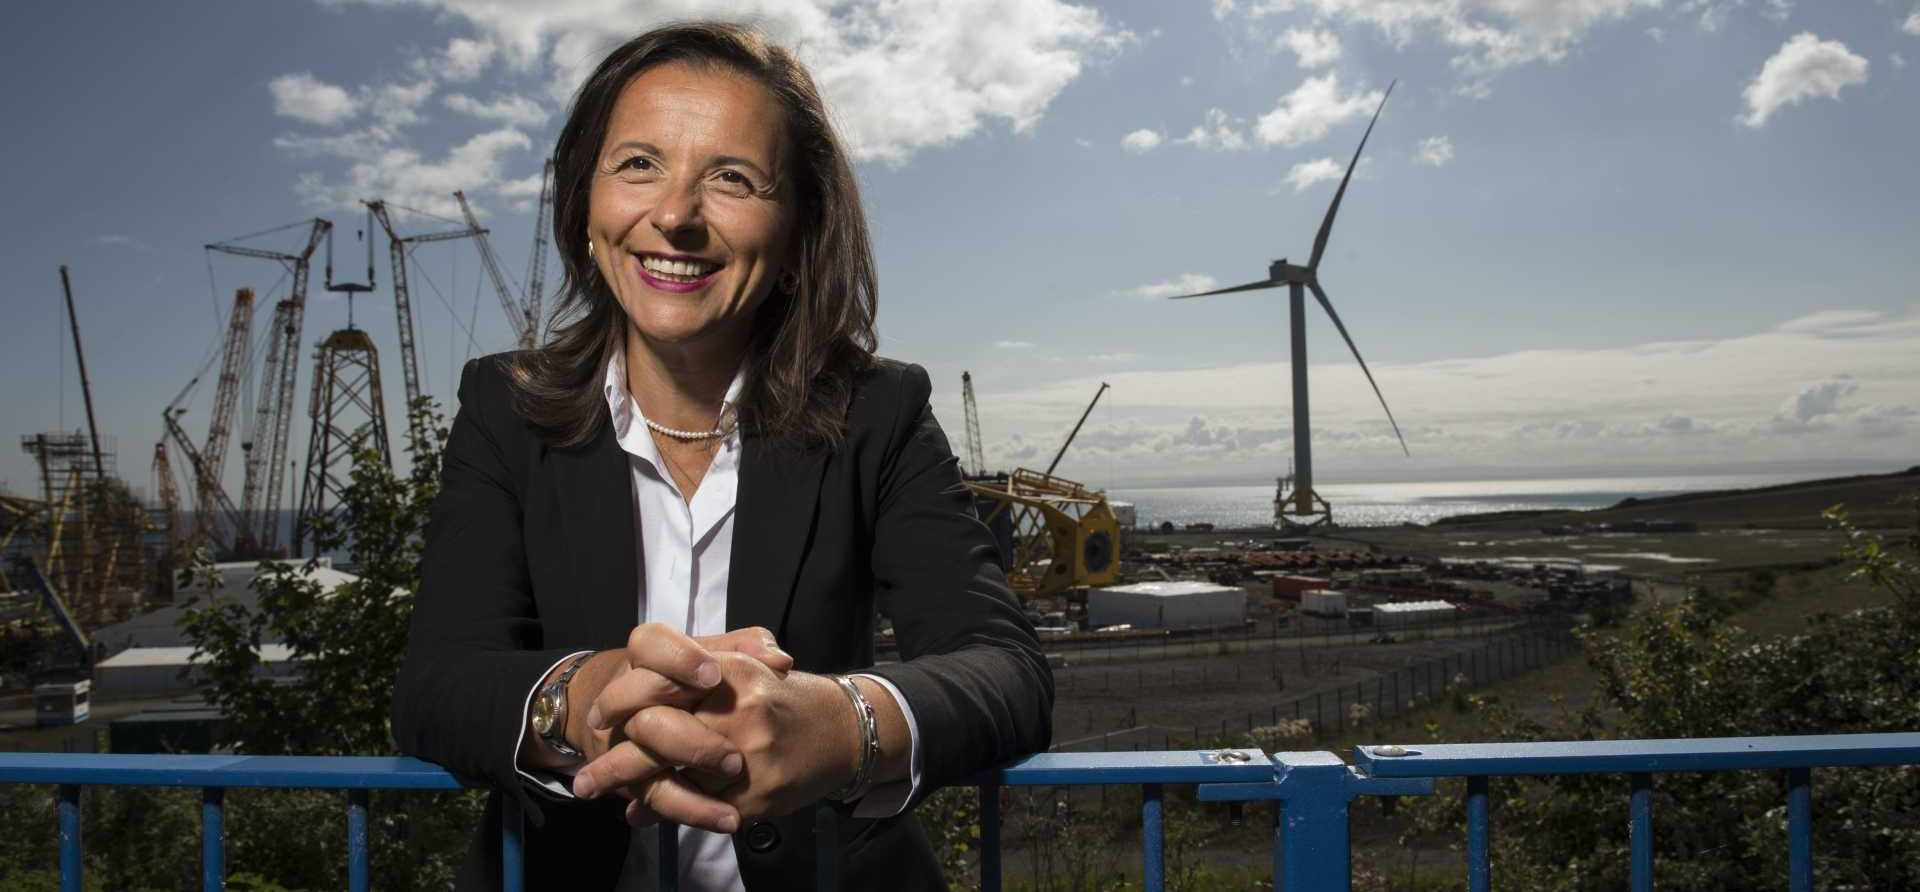 CEO Sabrina Malpede in front of wind farm in Edinburgh - © Wattie Cheung